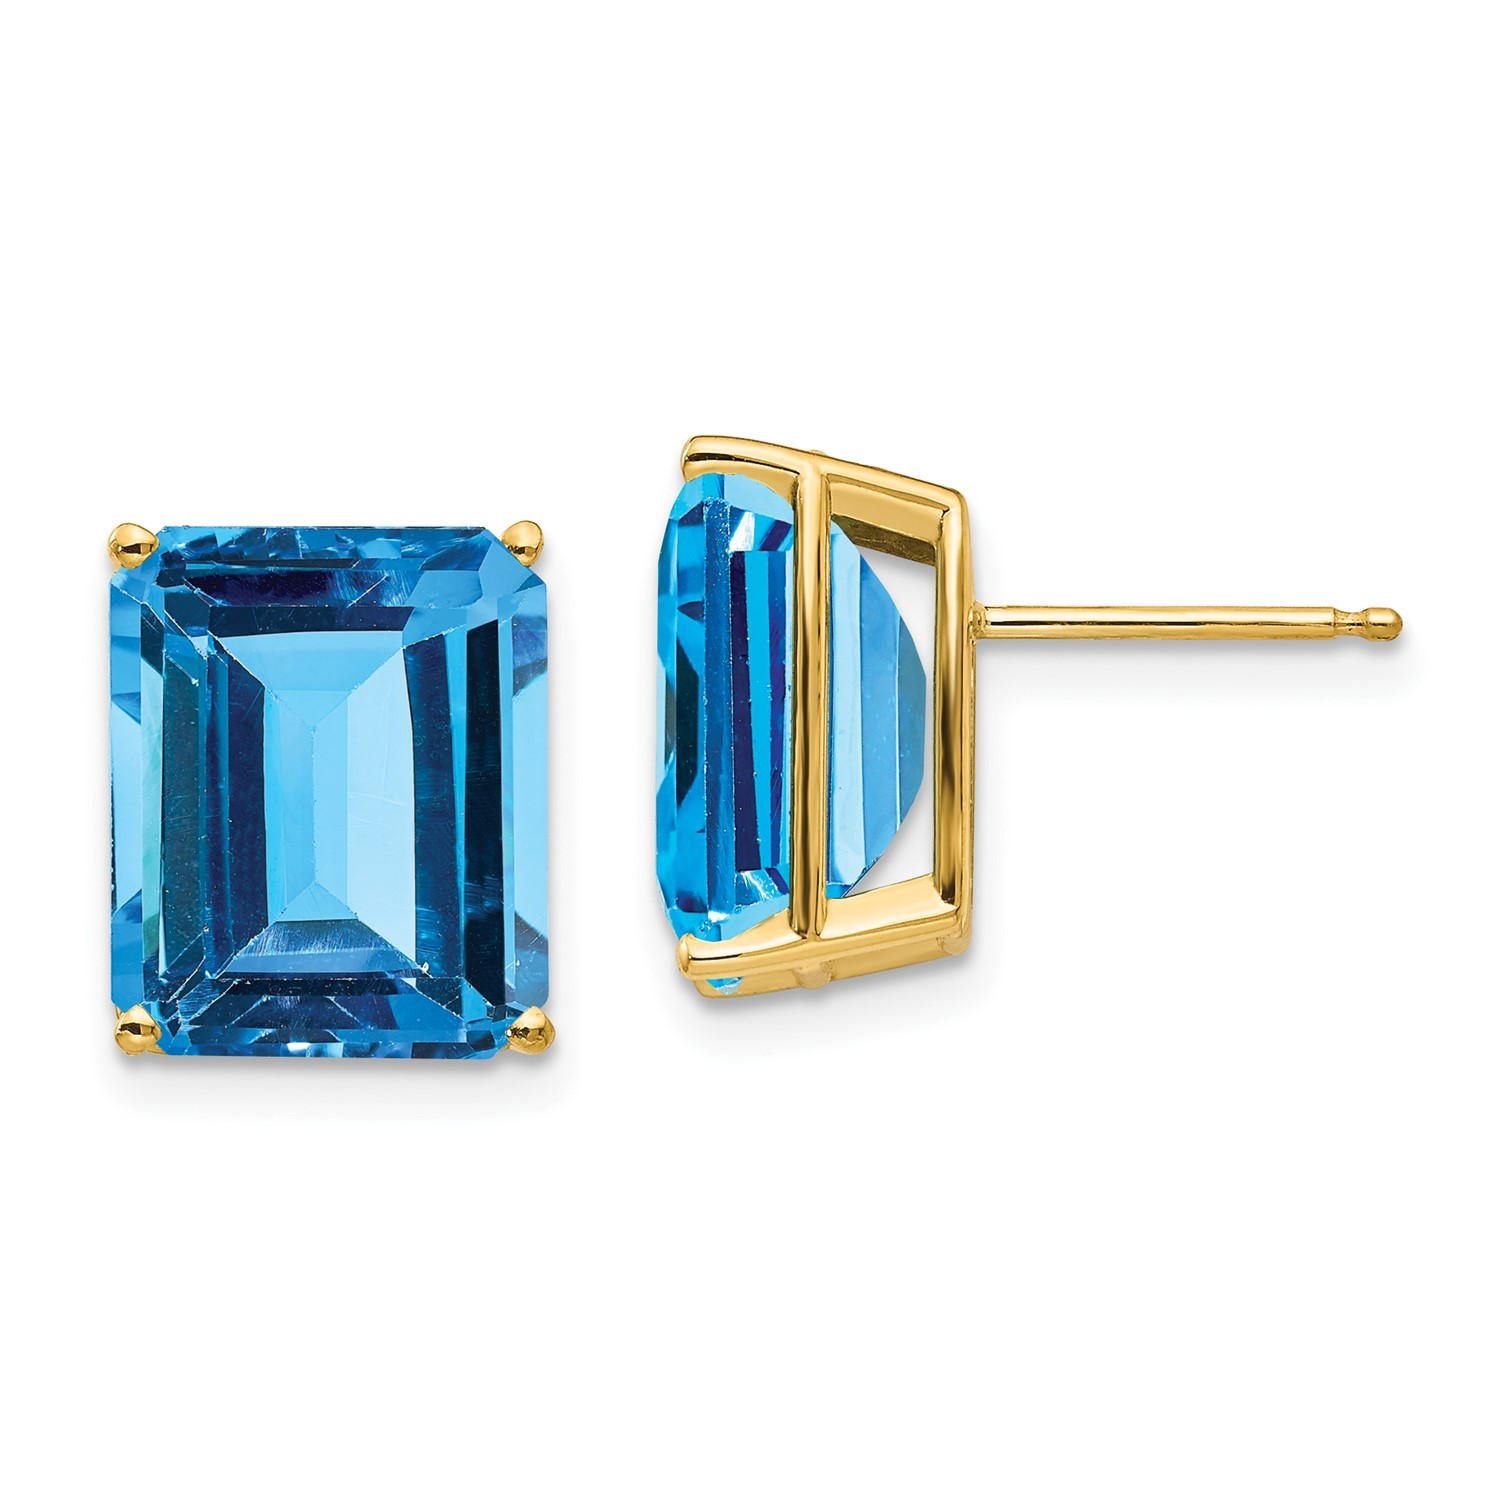 Details About 14k Yellow Gold 12x10mm Emerald Cut Blue Topaz Earrings 15ct 0 4in X 3in